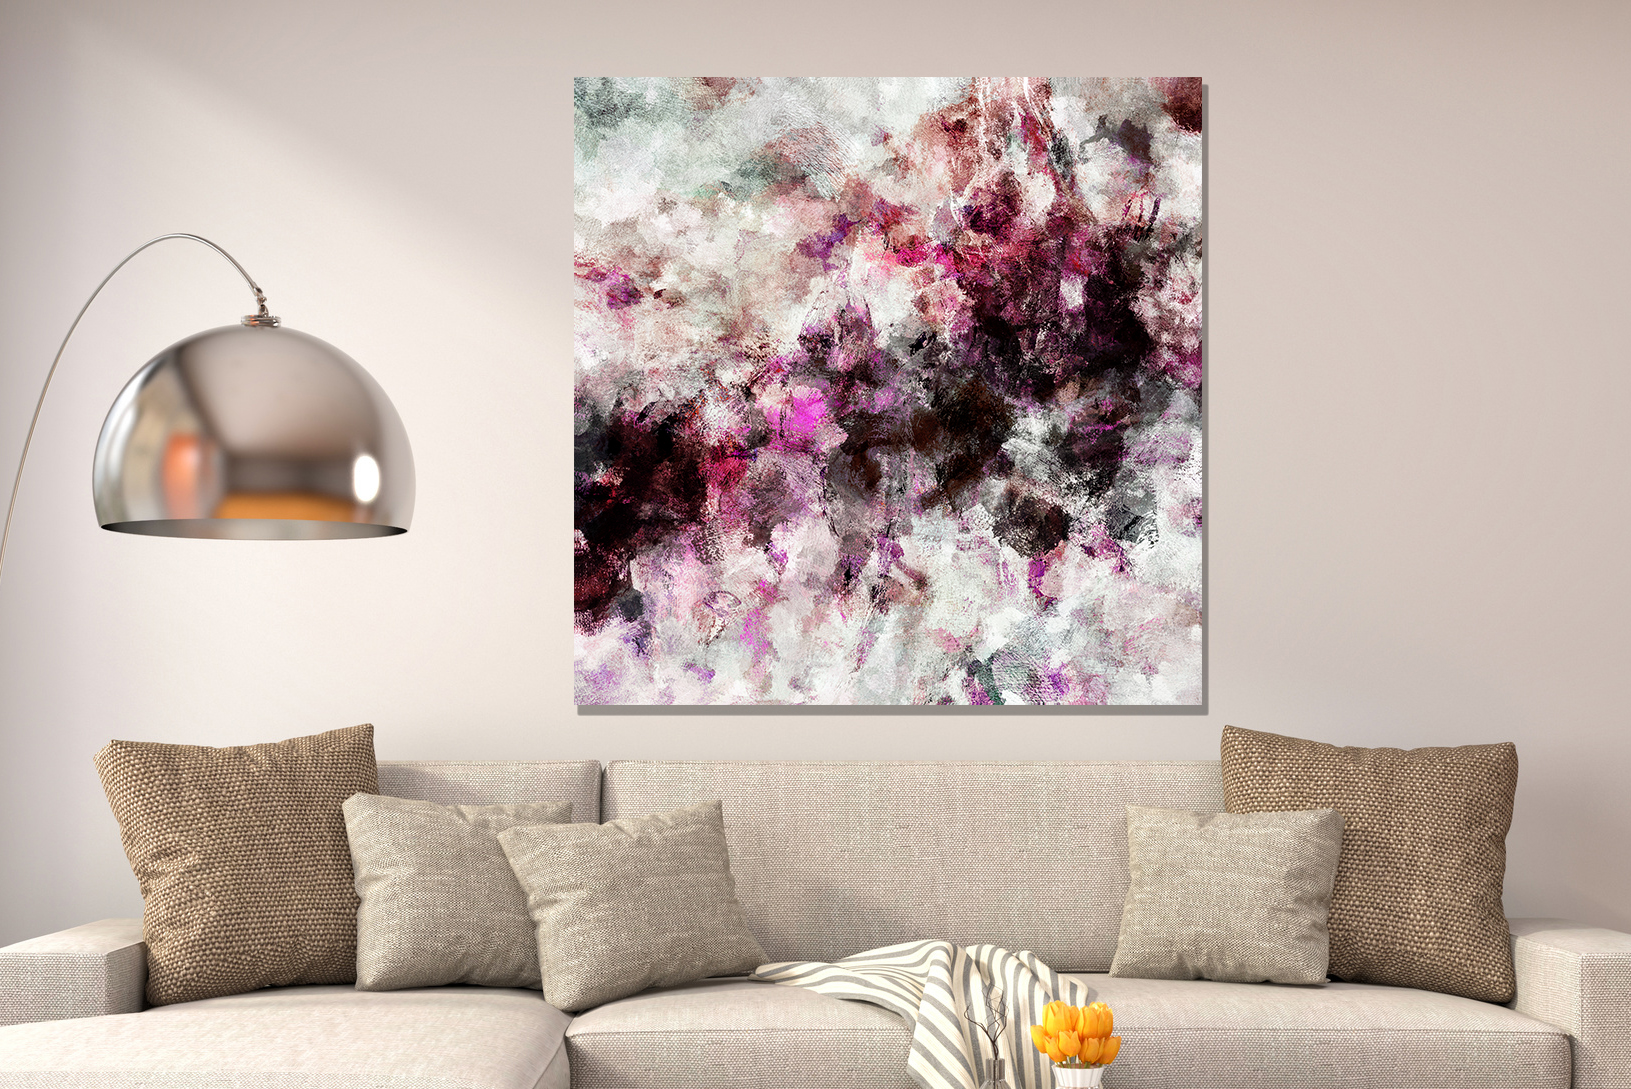 Abstract Art Prints On Canvas Pink Abstract Art Abstract Art Prints Modern Print Pink Art Prints Canvas Print Of An Original Pink Painting Minimalist Pink Wall Art